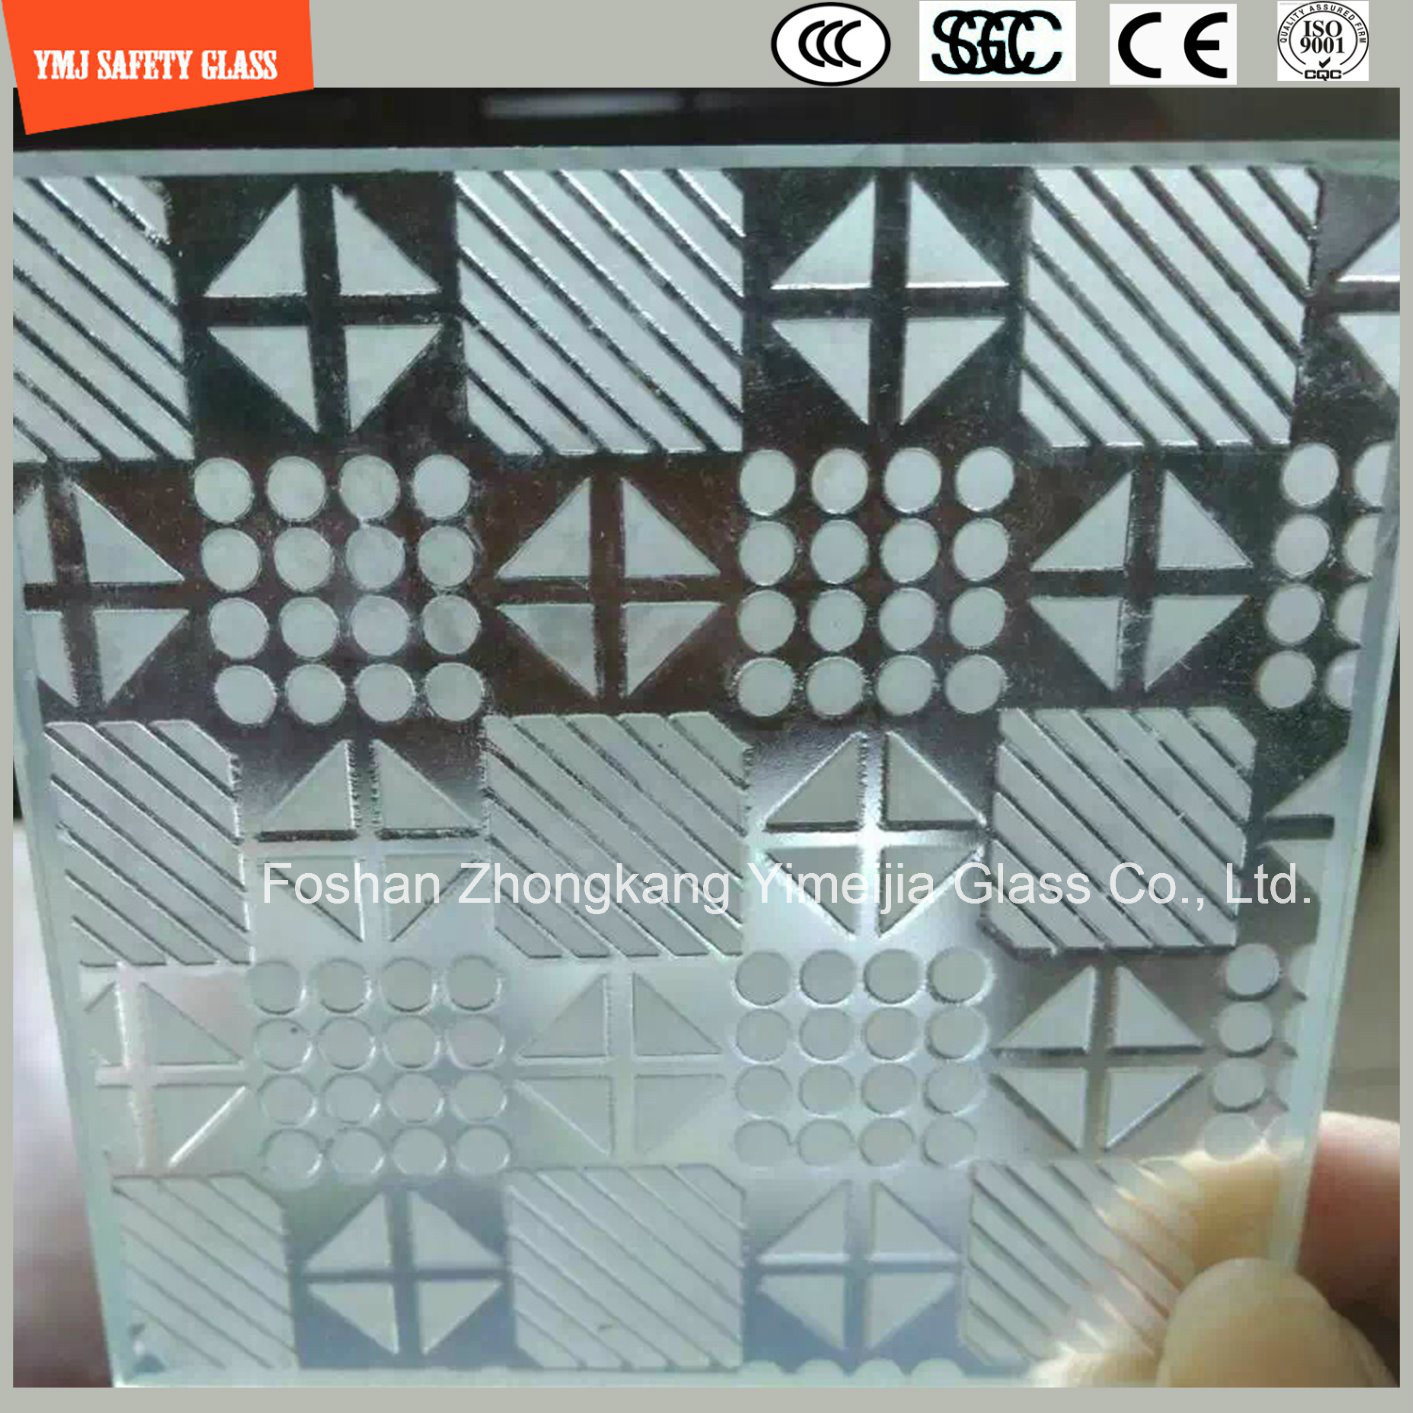 4-19mm Tempered Glass for Curtain Wall, Hotel, Construction, Shower, Green House